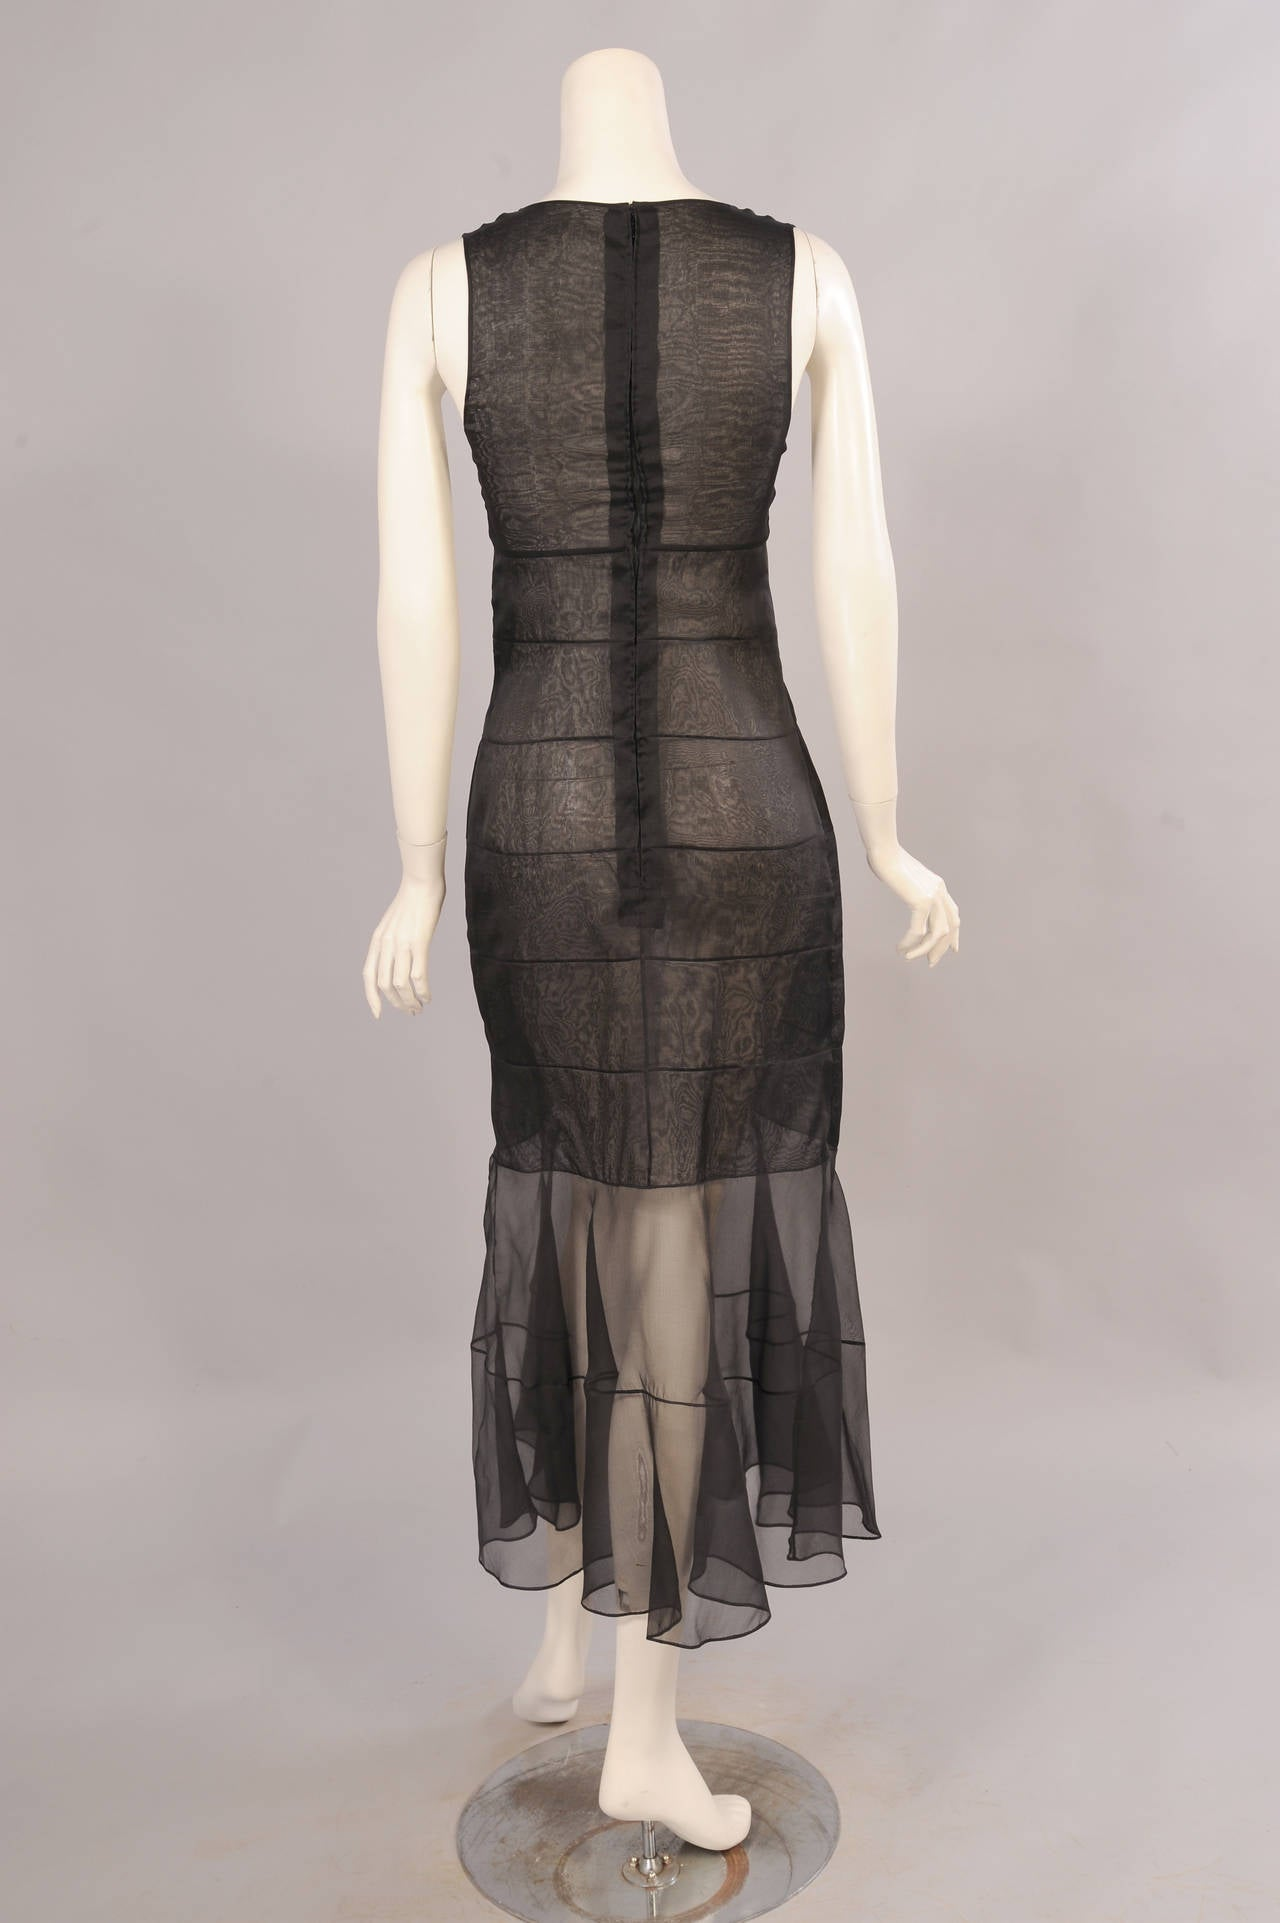 Chanel Haute Couture Sheer Black Silk Dress and Jacket For Sale 2